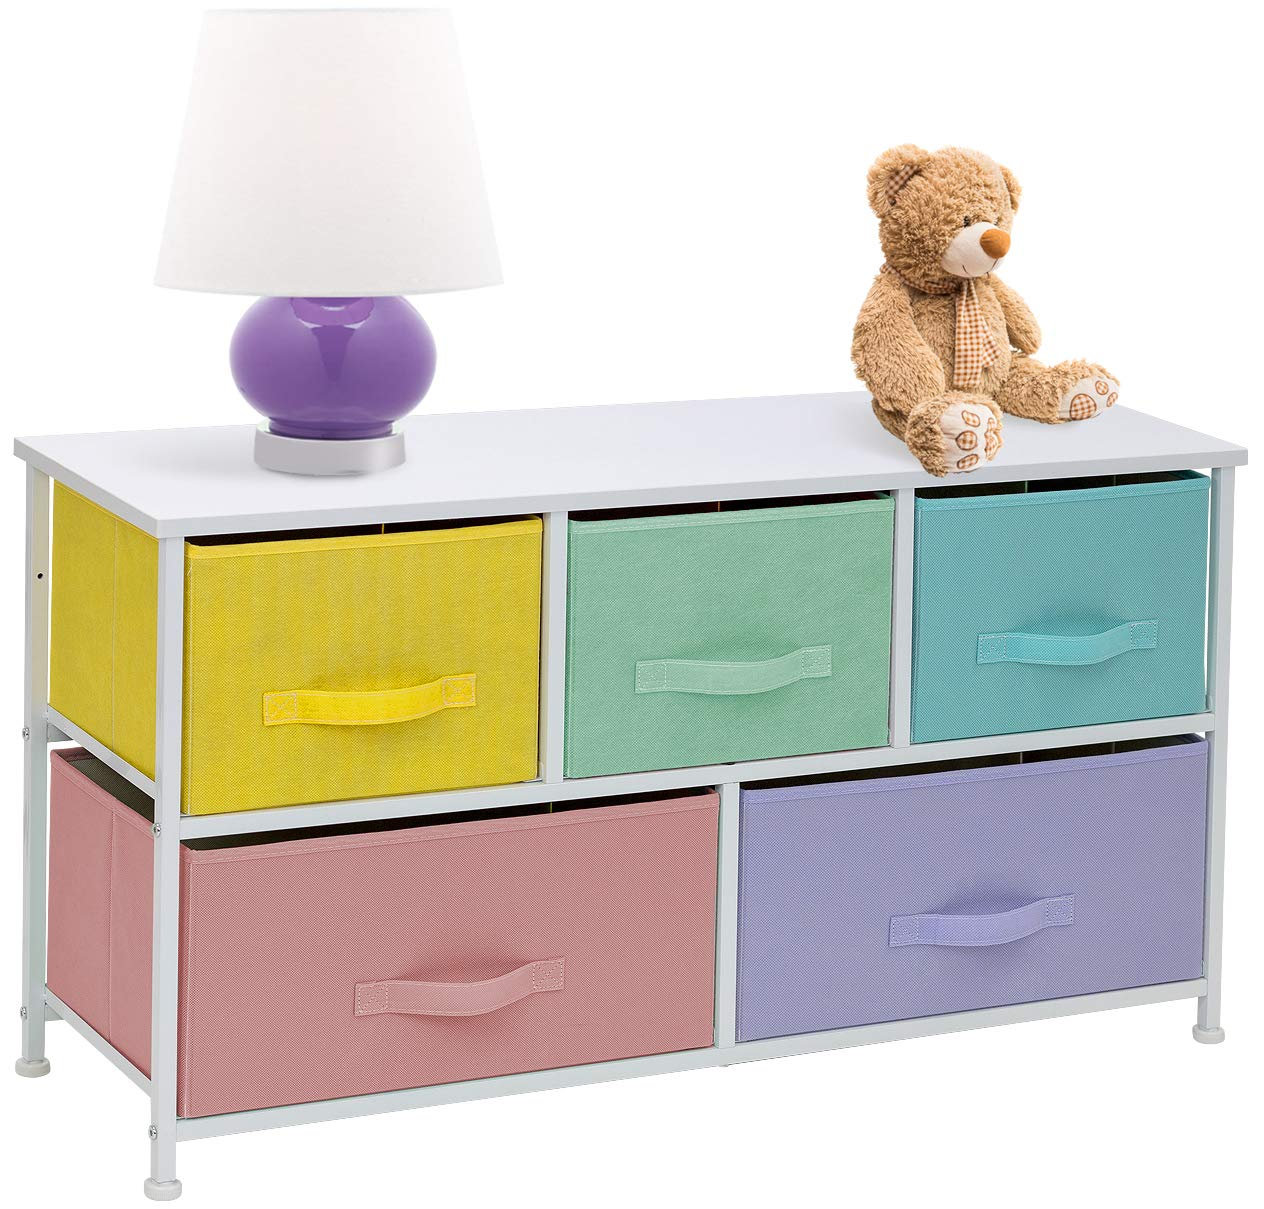 Sorbus Dresser with 5 Drawers Furniture Storage Tower Chest for Kid s, Teens, Bedroom, Nursery,Steel Frame, Wood Top, Easy Pull Fabric Bins, Pastel White